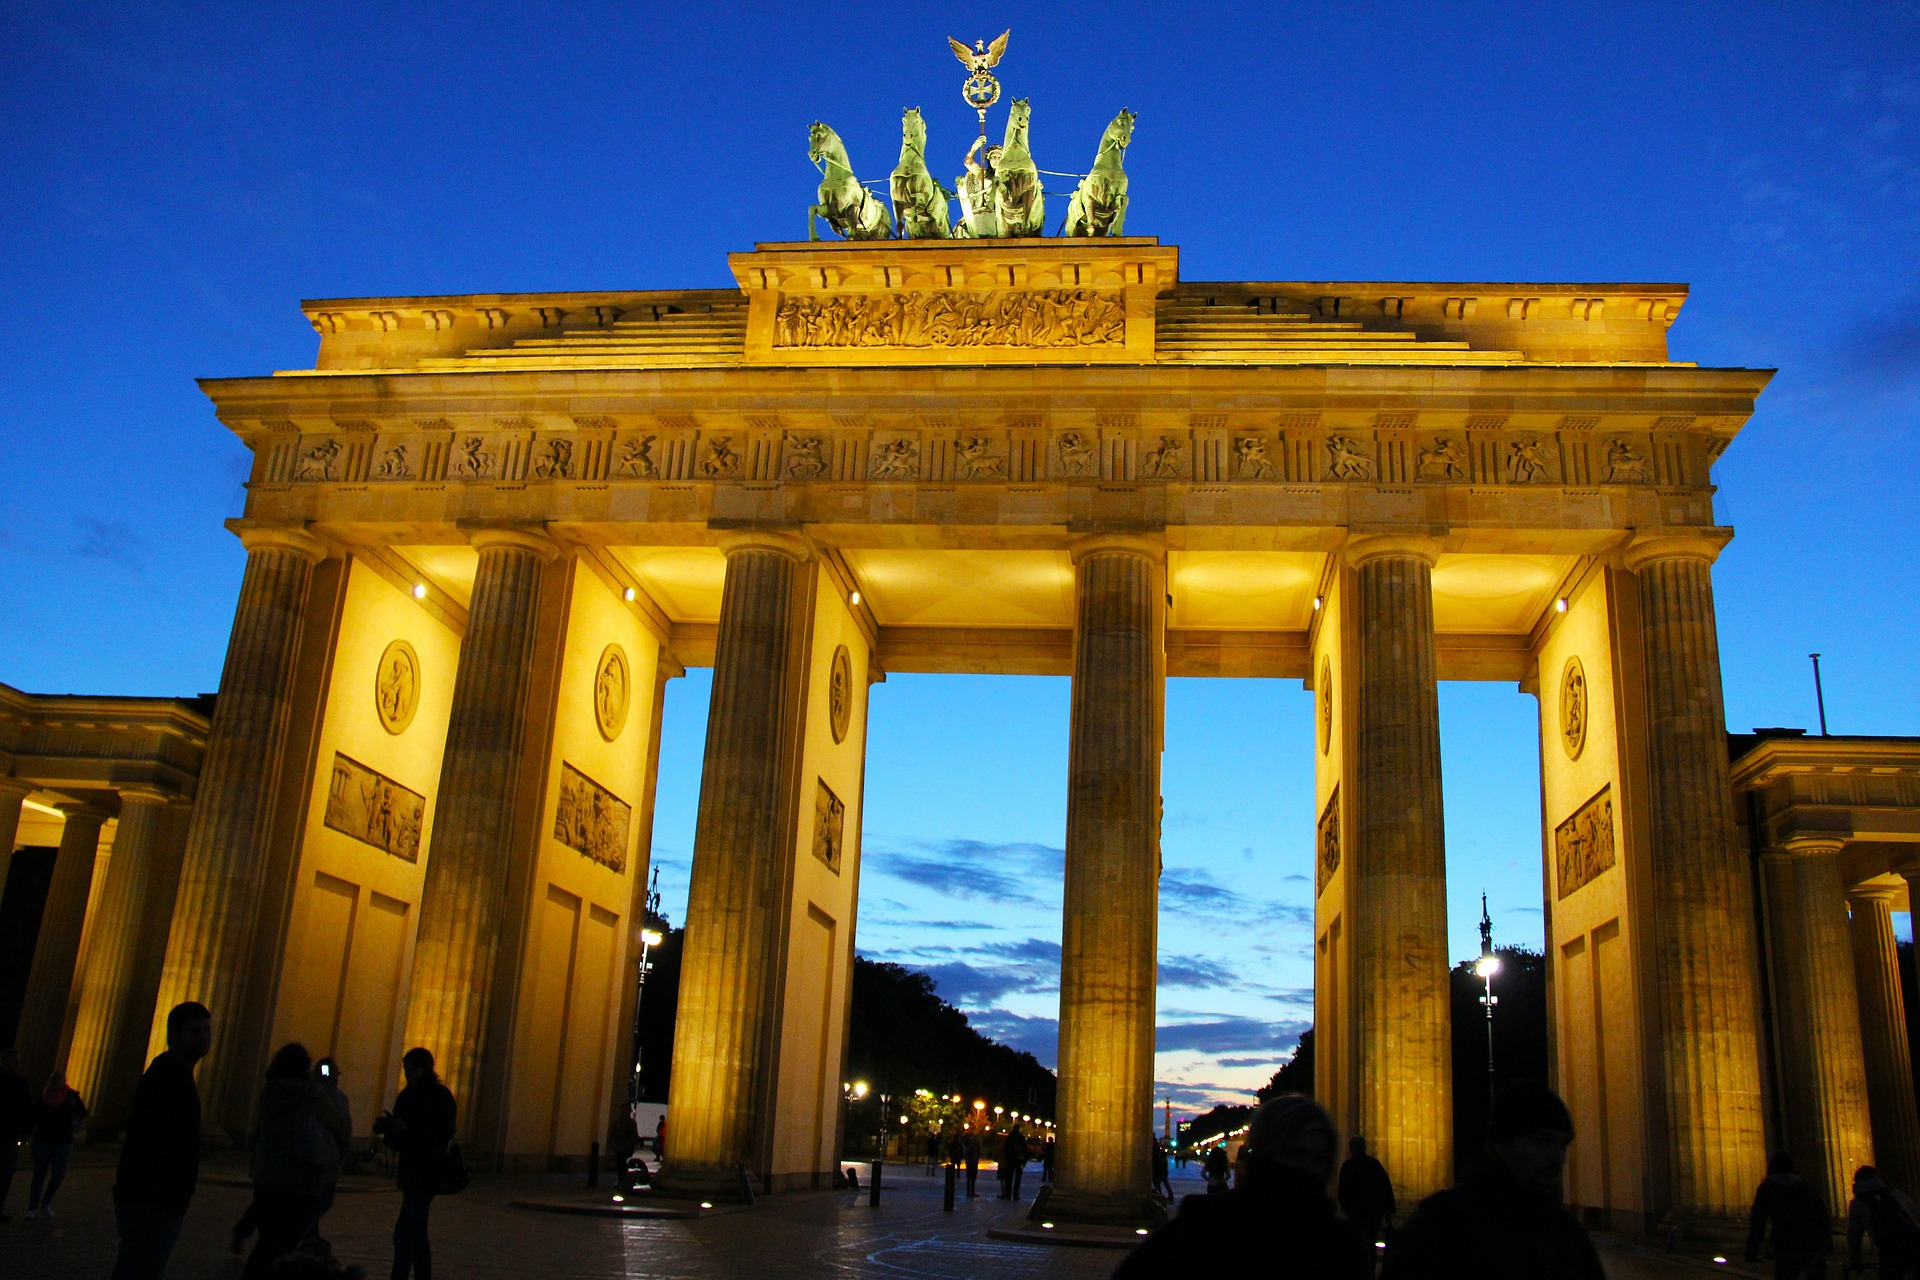 Brandenburg Gate, Historical place in Berlin, Germany